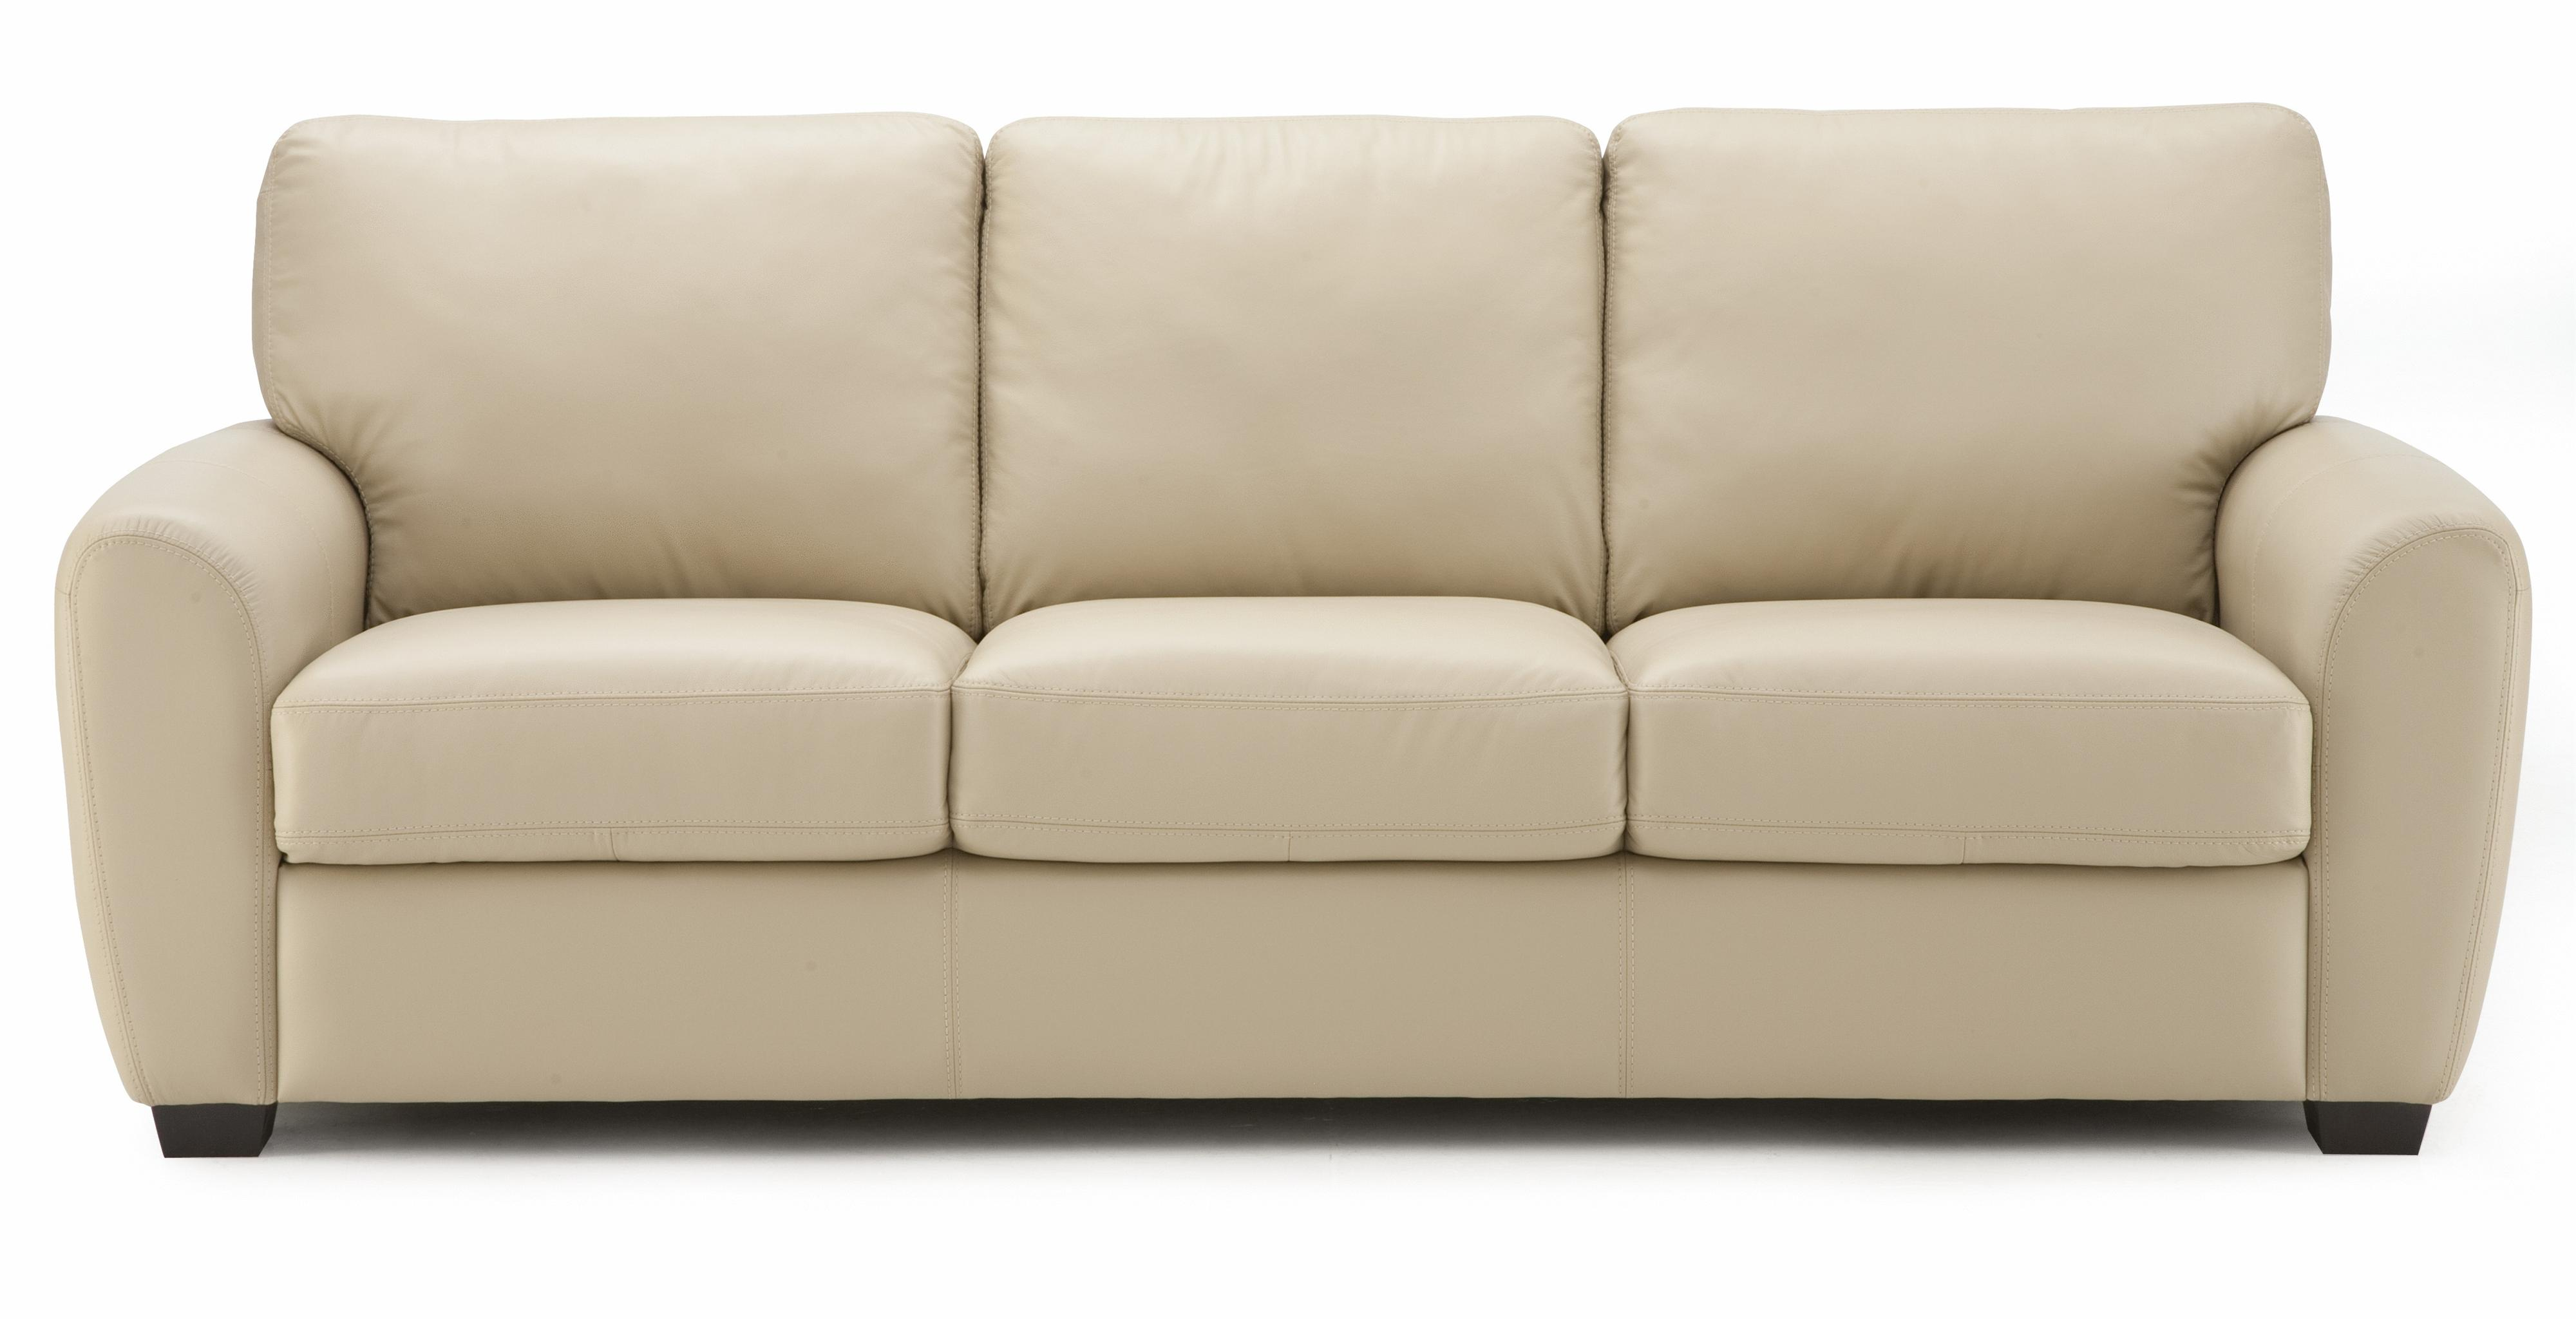 palliser stationary sofas sofa connecticut contemporary with rounded track